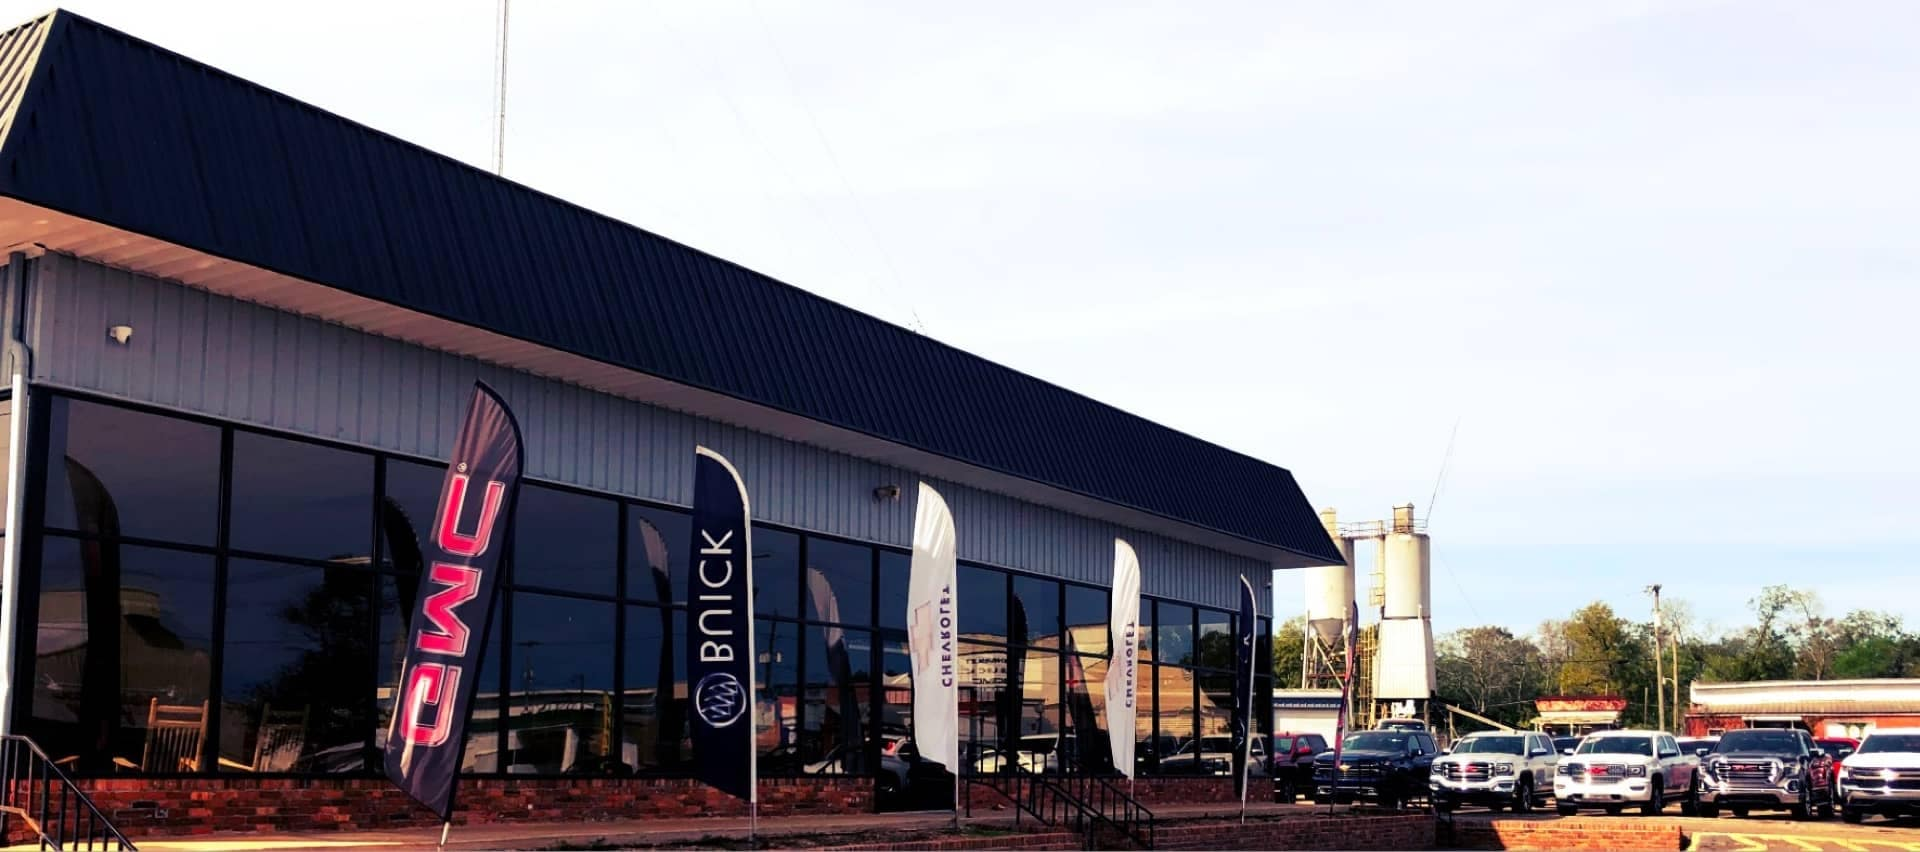 An exterior shot of Blakely Chevrolet dealership during the day.